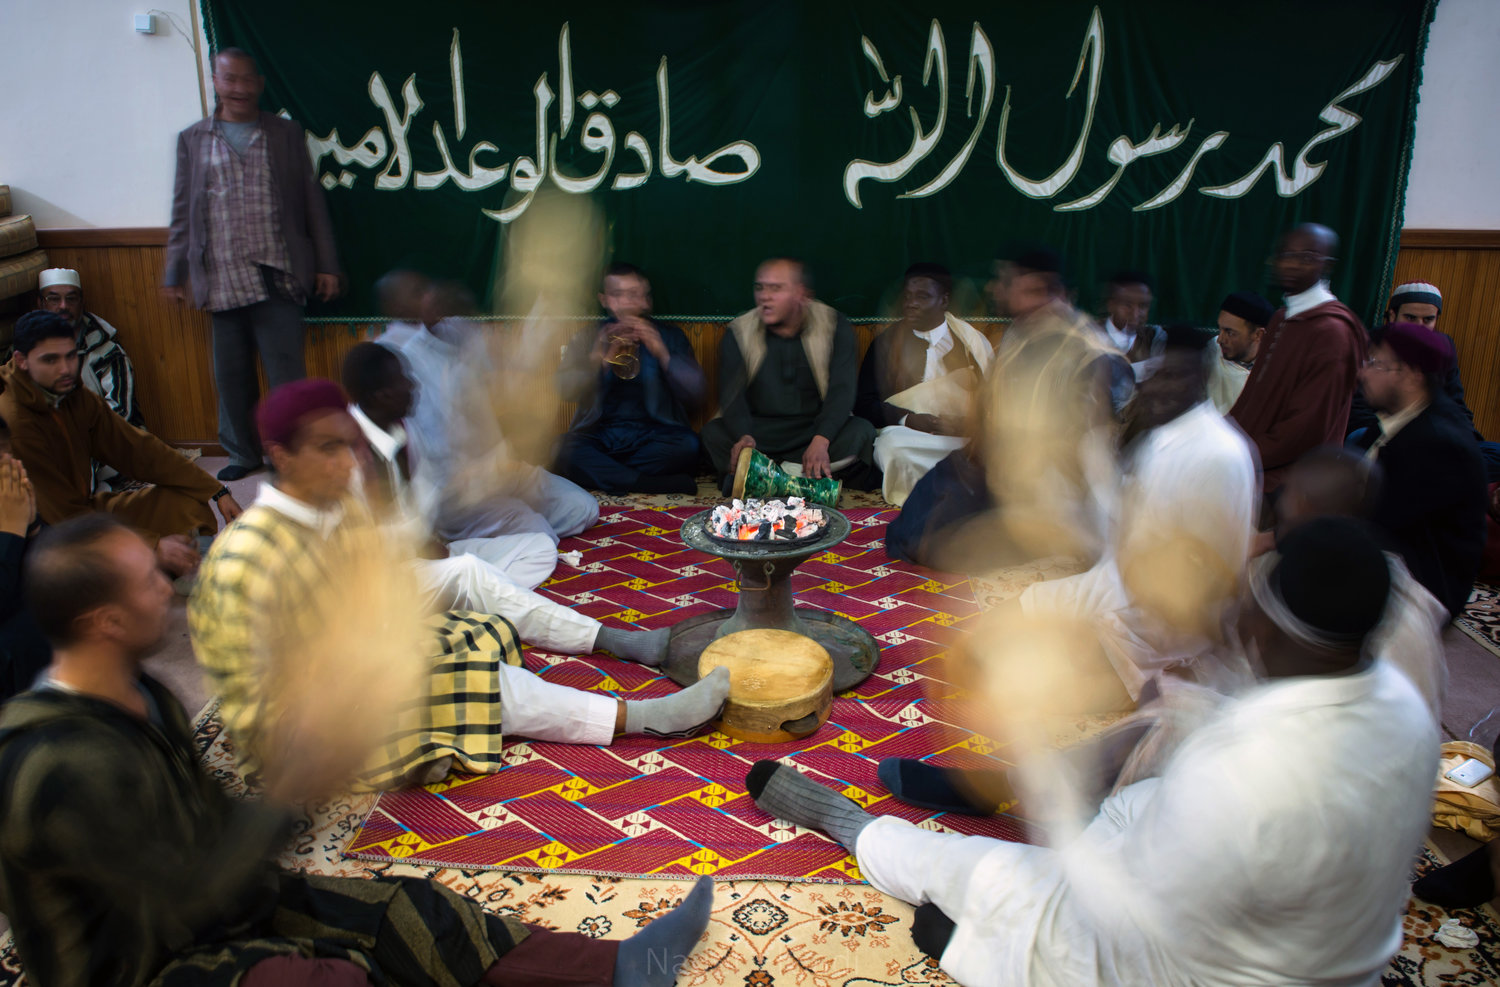 Adherents to Sufism incorporate music and other activities in their worship.